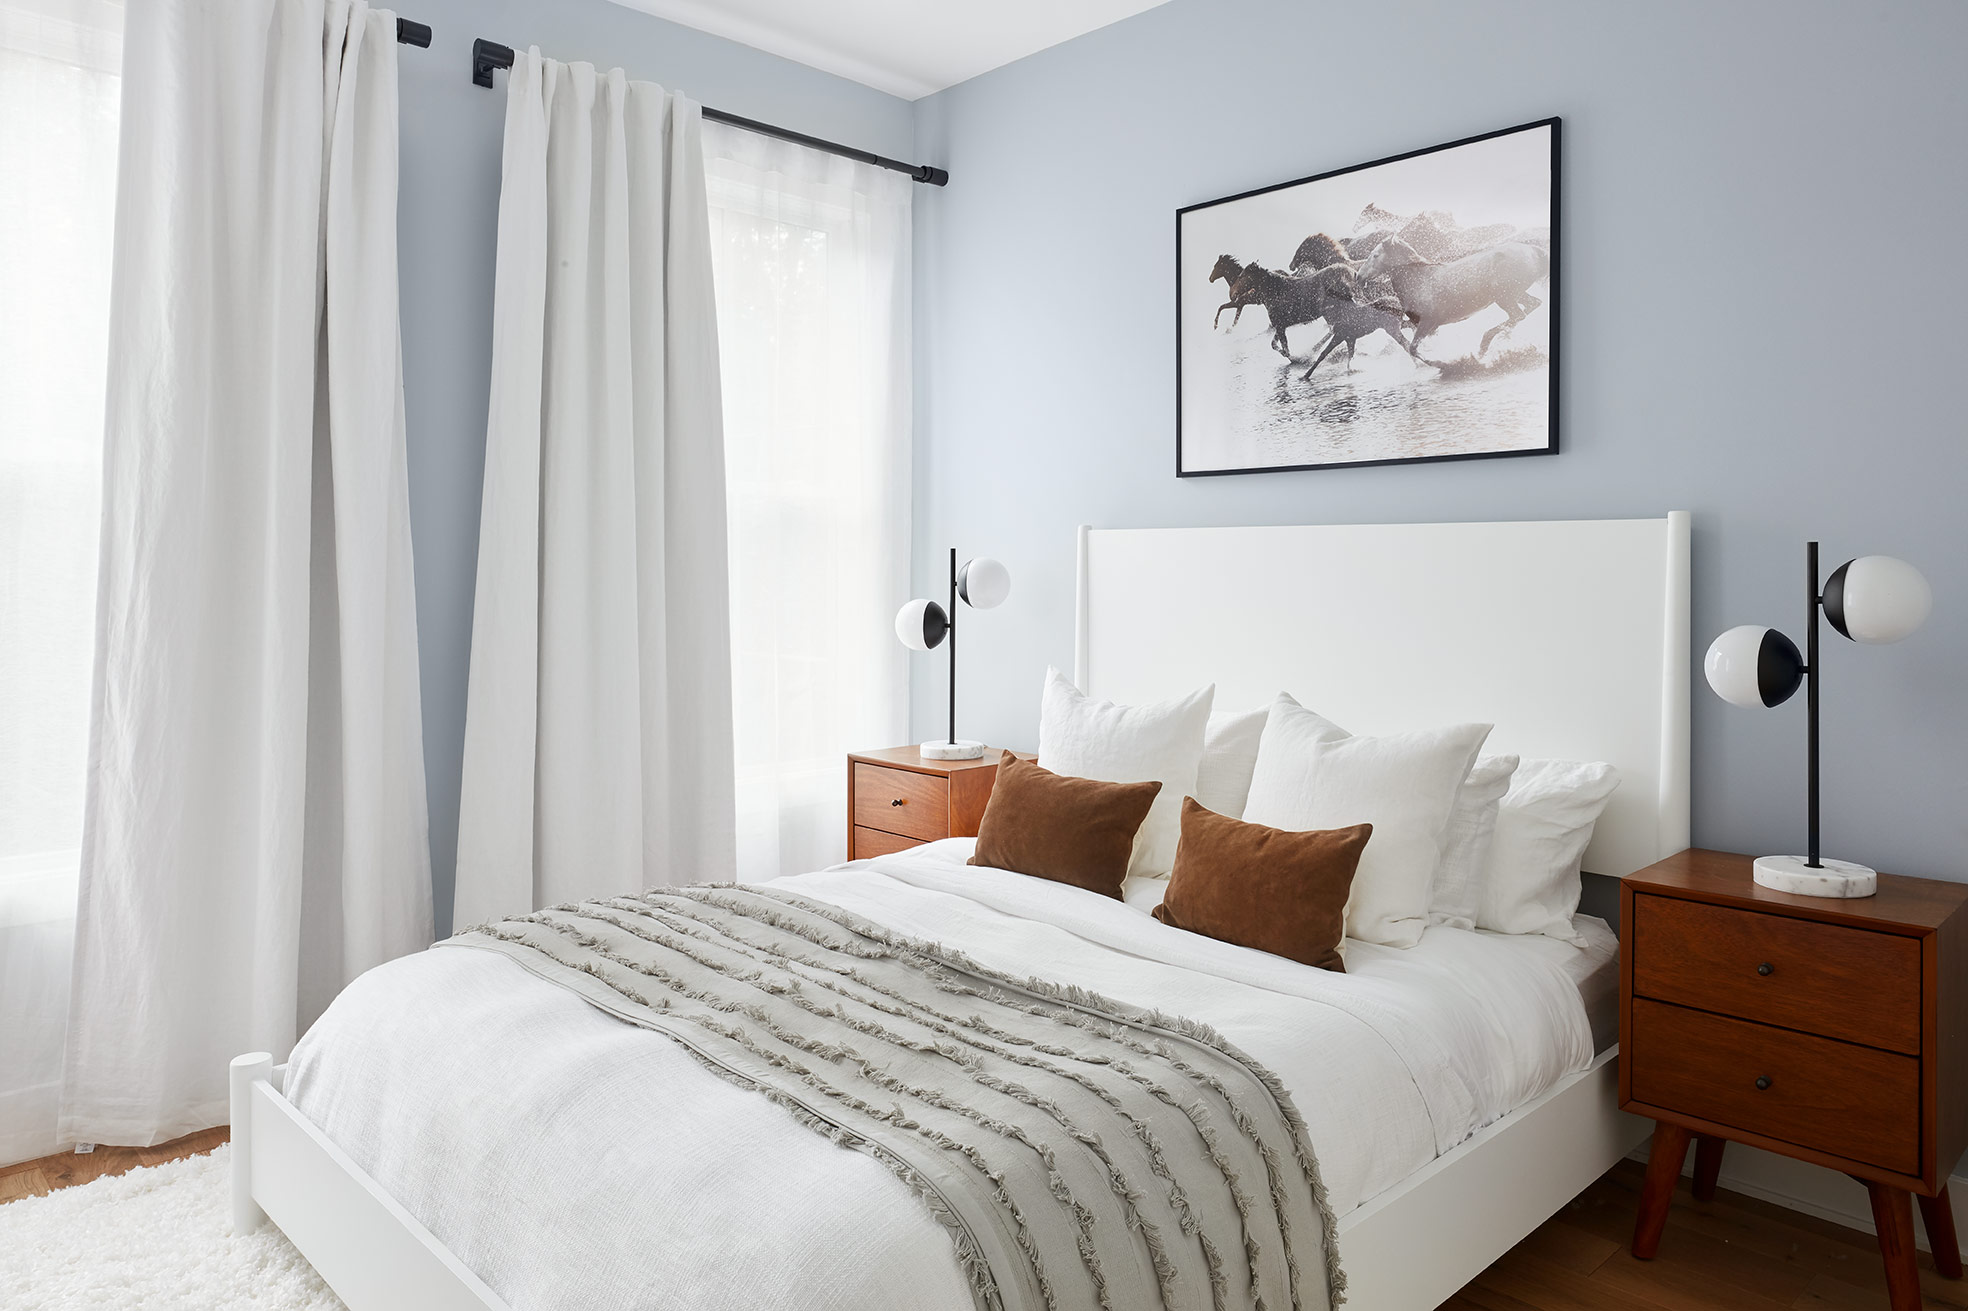 The second bedroom has the same headboard as the first but in white, to keep the spaces cohesive. Warm wood nightstands and brown suede pillows add contrast to the crisp white bedding and plush white rug.